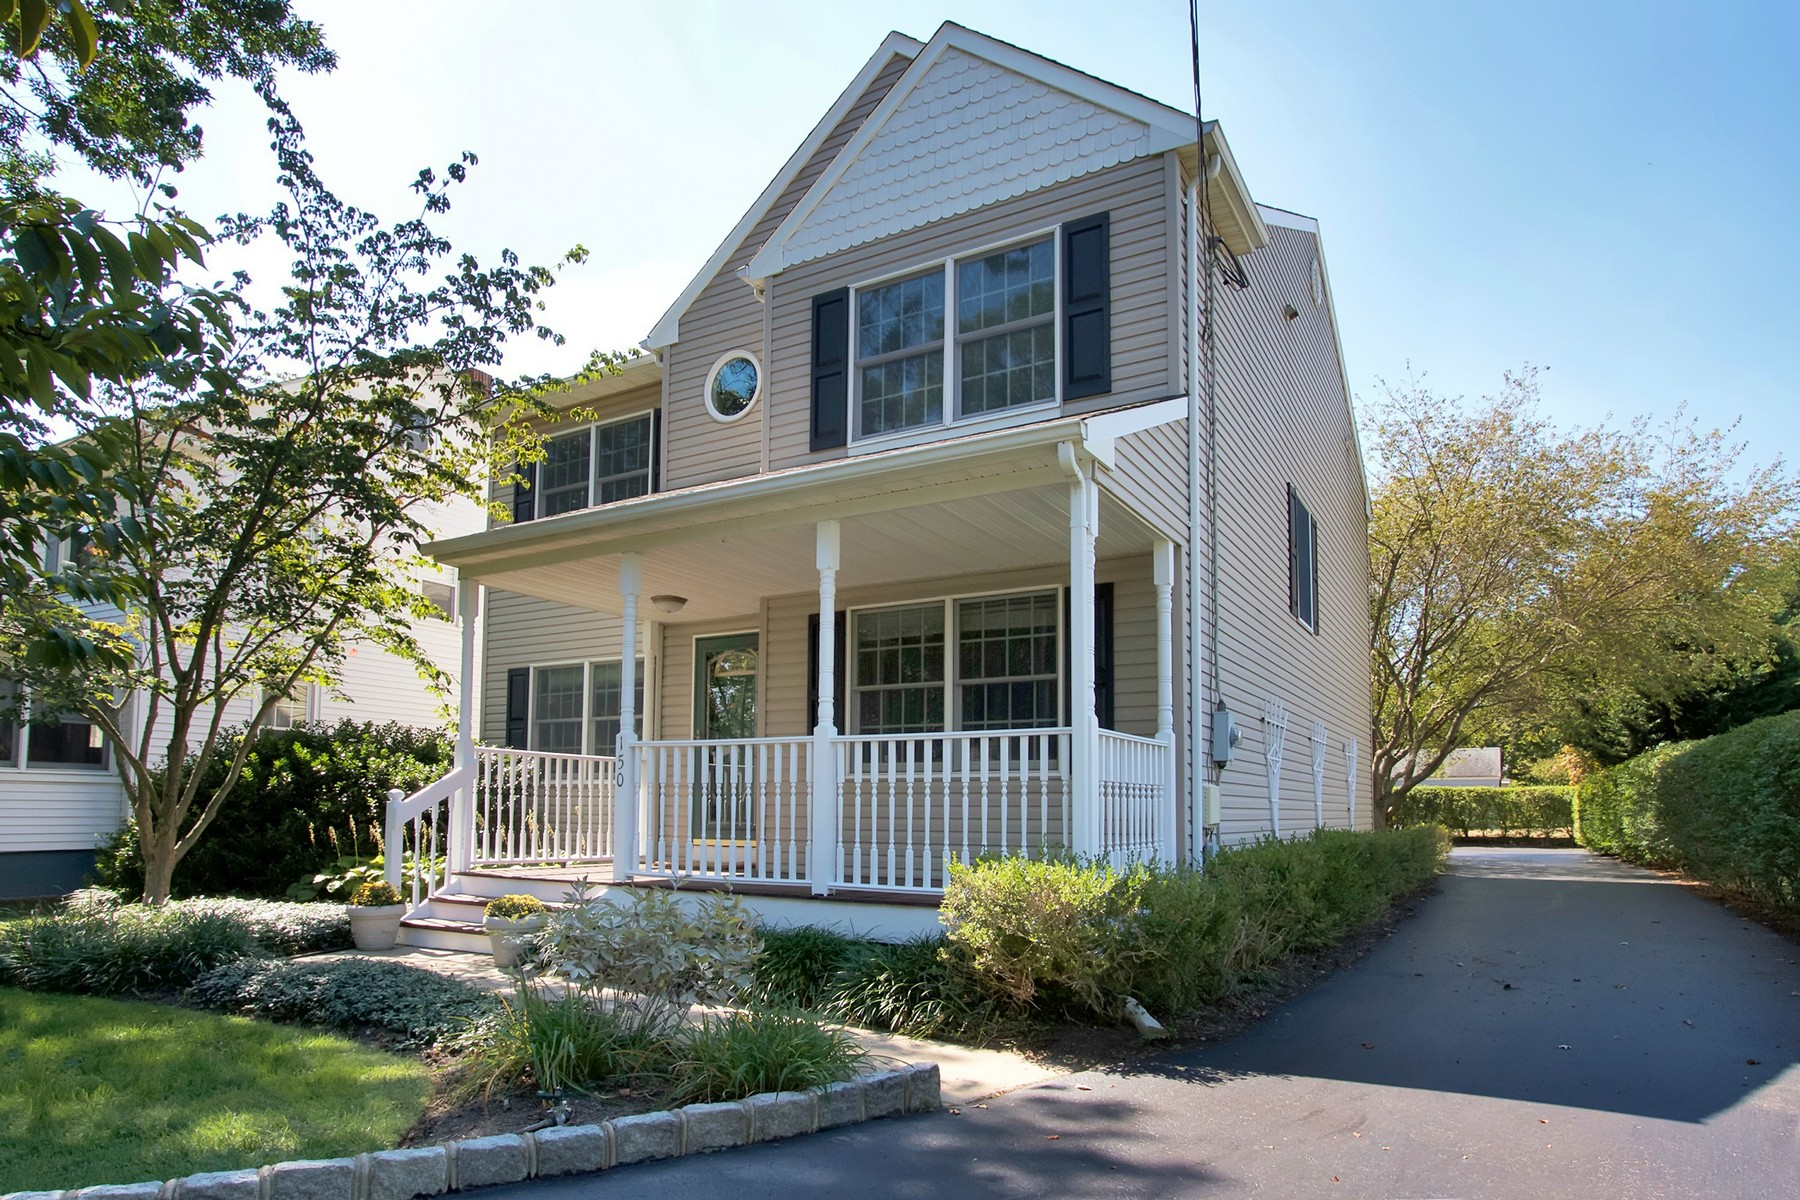 Single Family Home for Sale at Move- in ready in Fair Haven 150 Hance Rd Fair Haven, New Jersey 07704 United States